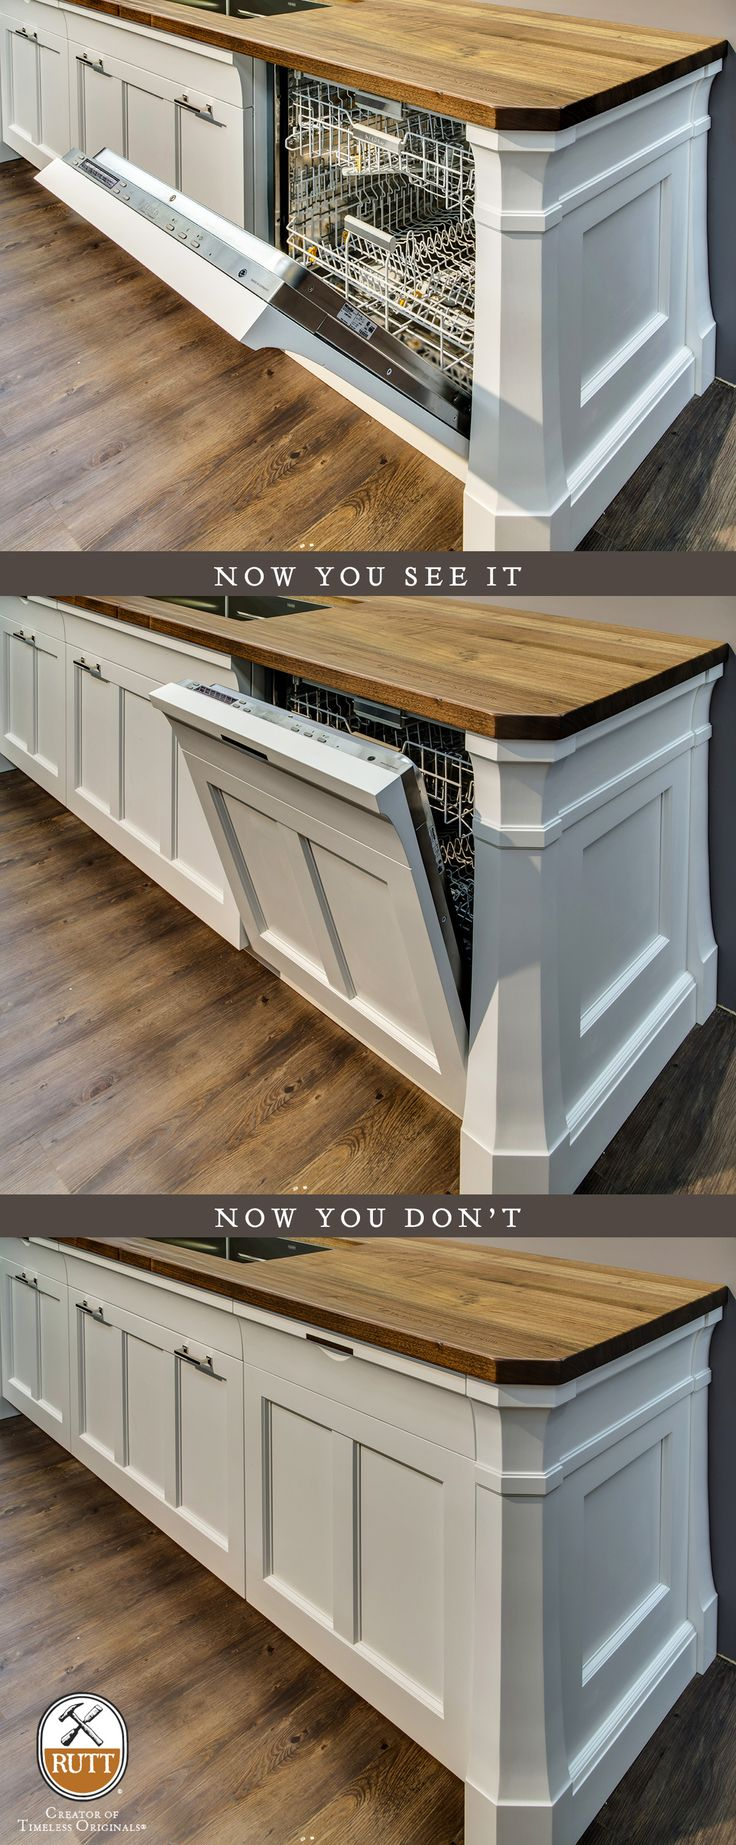 Dishwasher Drawers Vs Standard Top 25 Best Dishwashers Ideas On Pinterest Compact Dishwasher